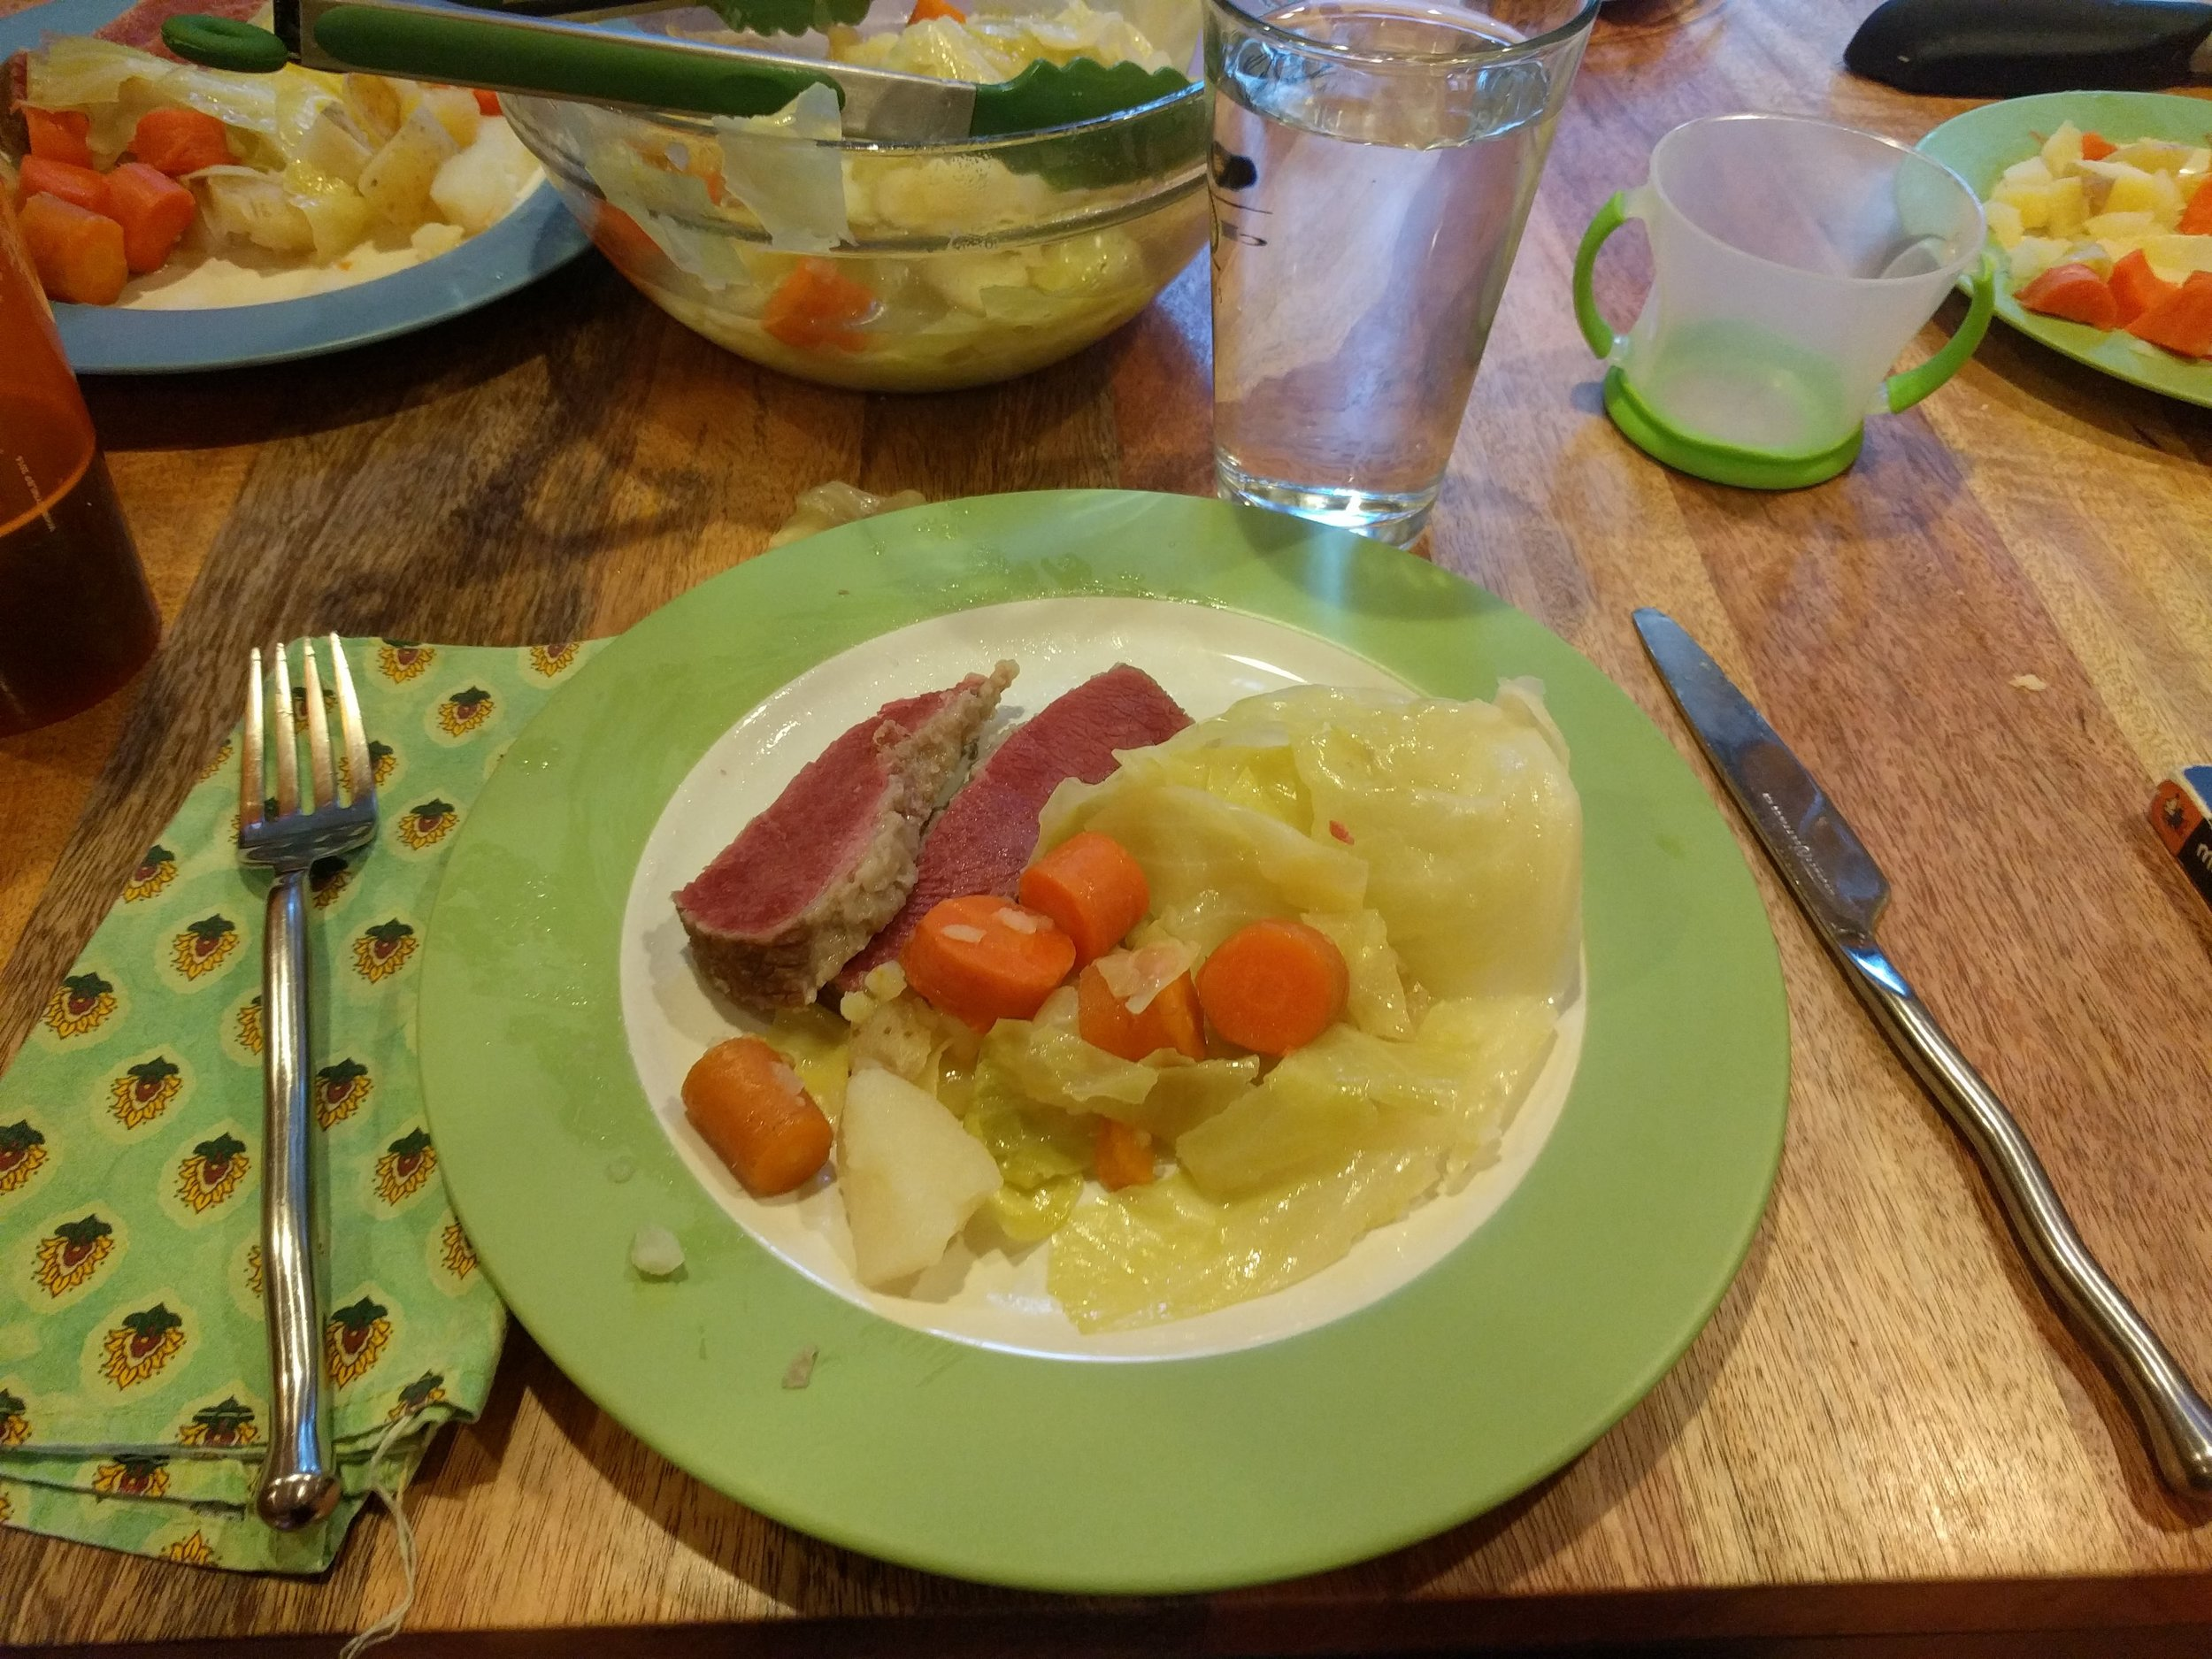 Corned beef, cabbage, potatoes, and carrots!